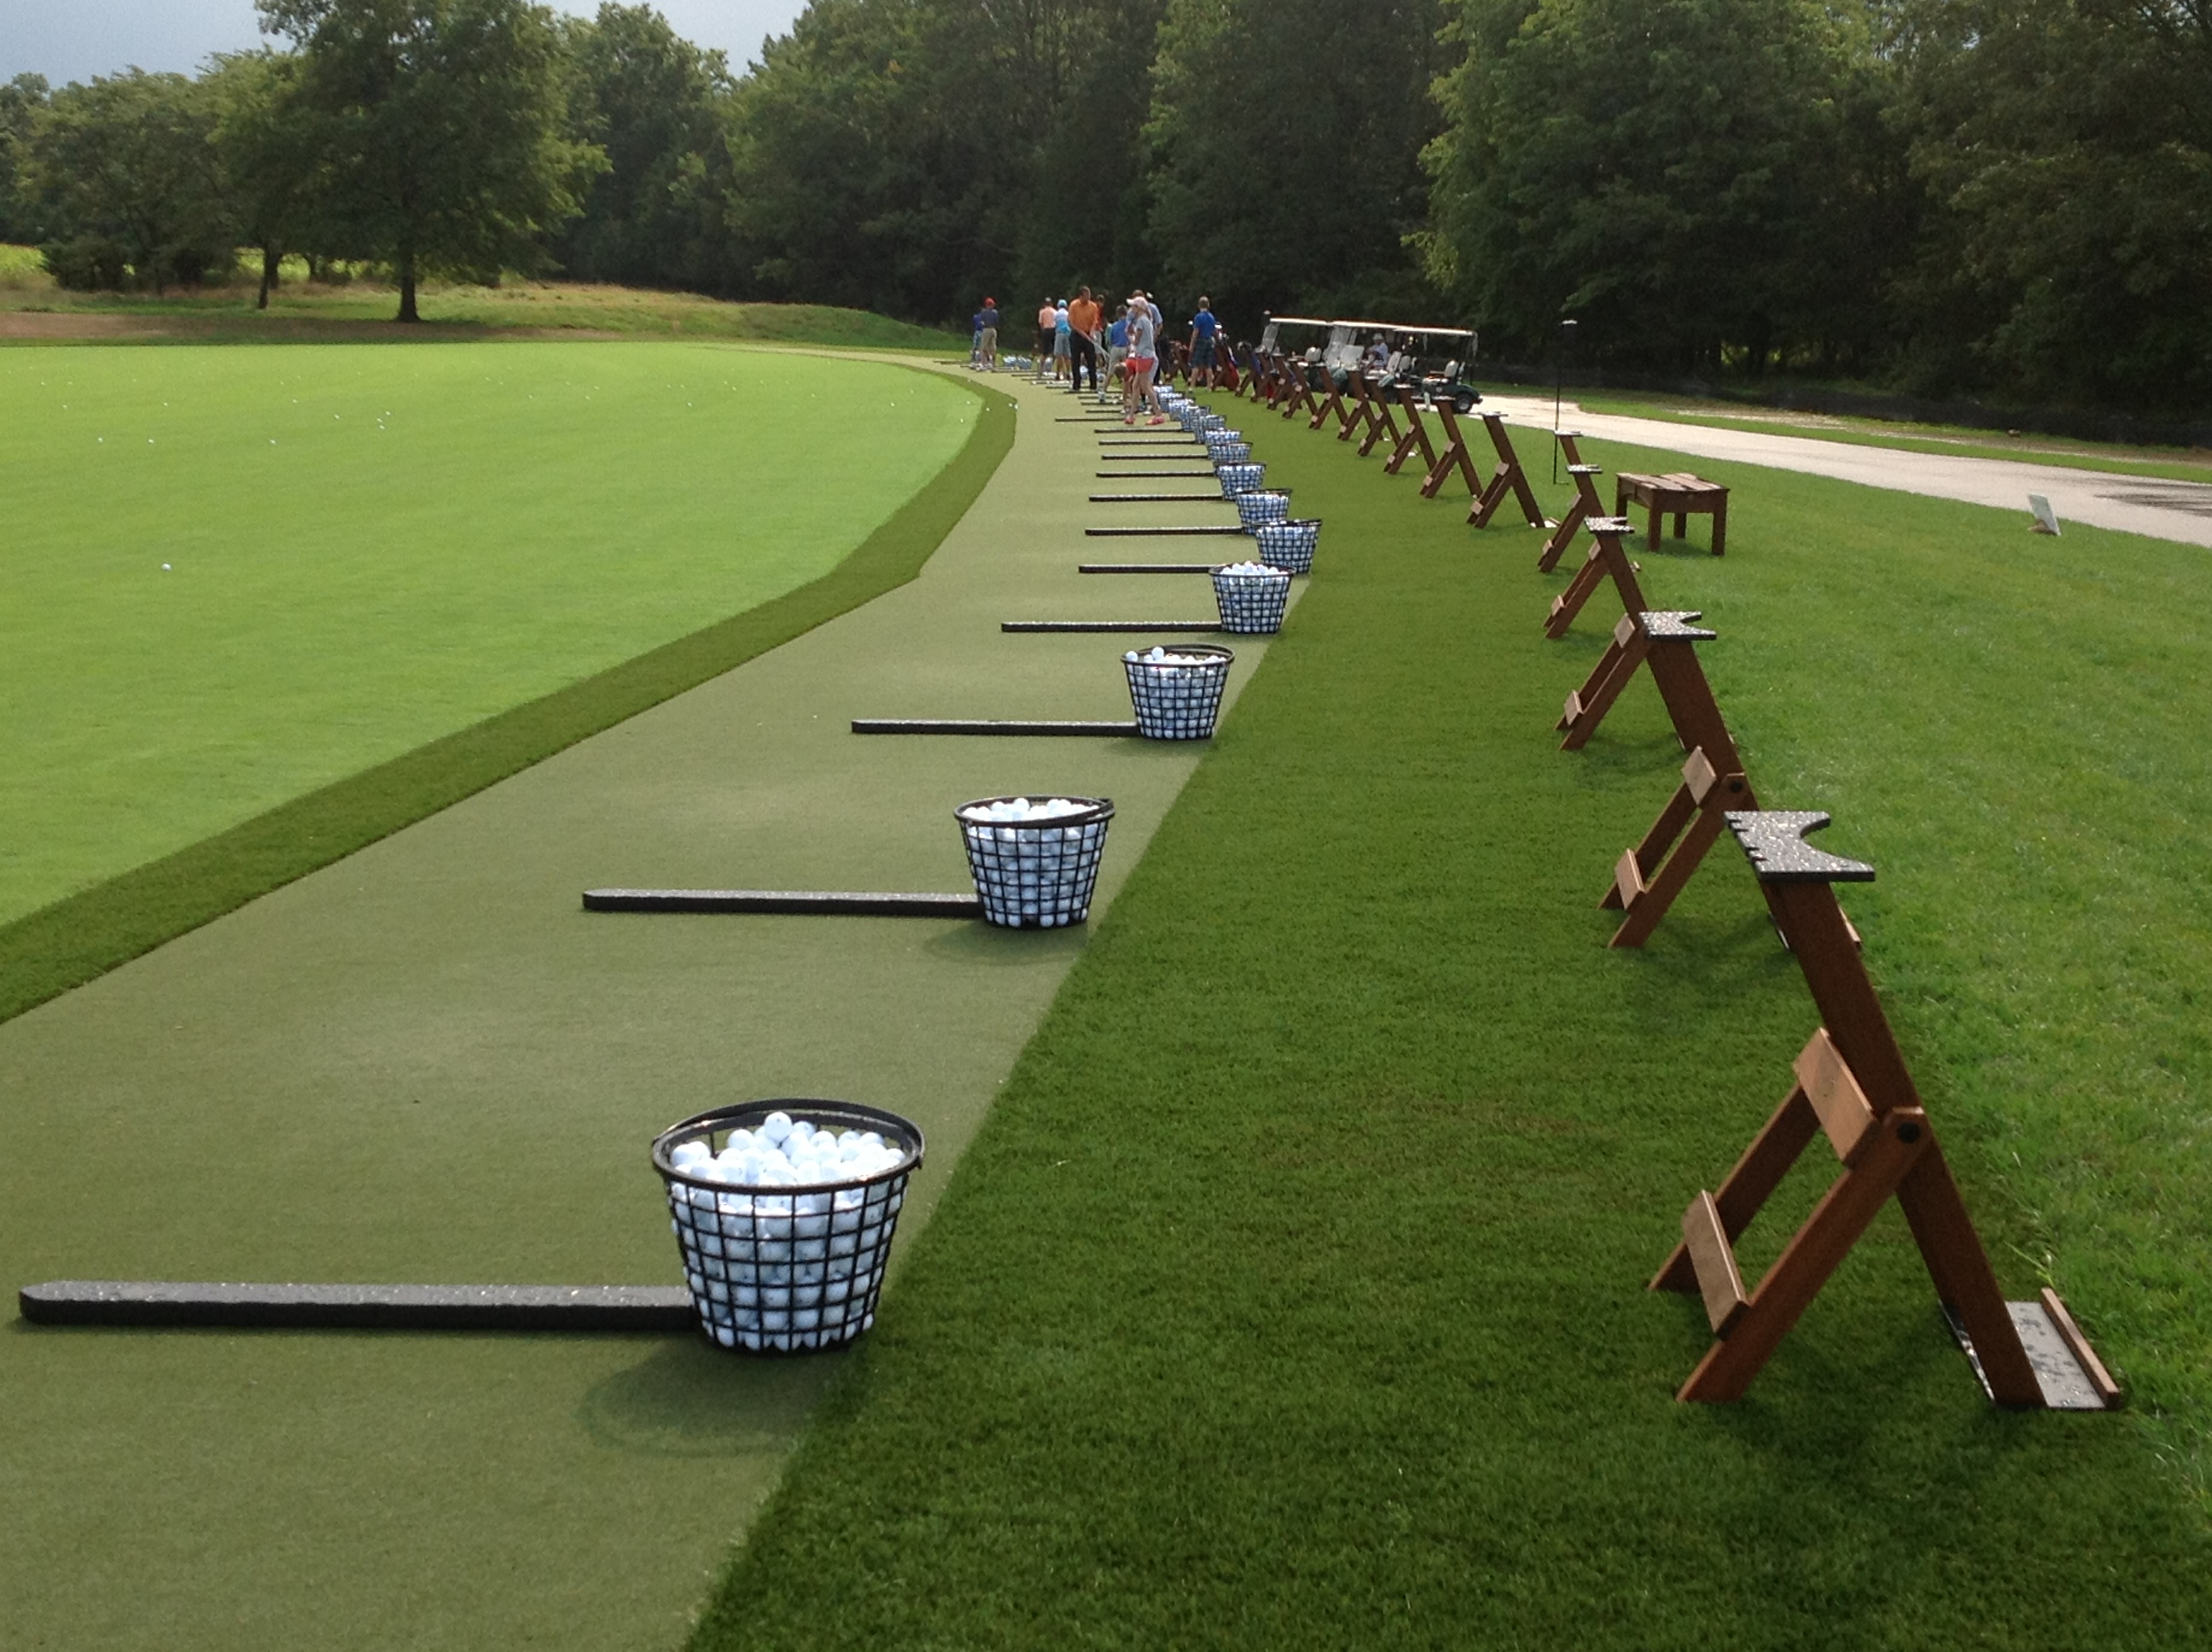 Golf Range Association of America Fiddlers Elbow Featured Renovation